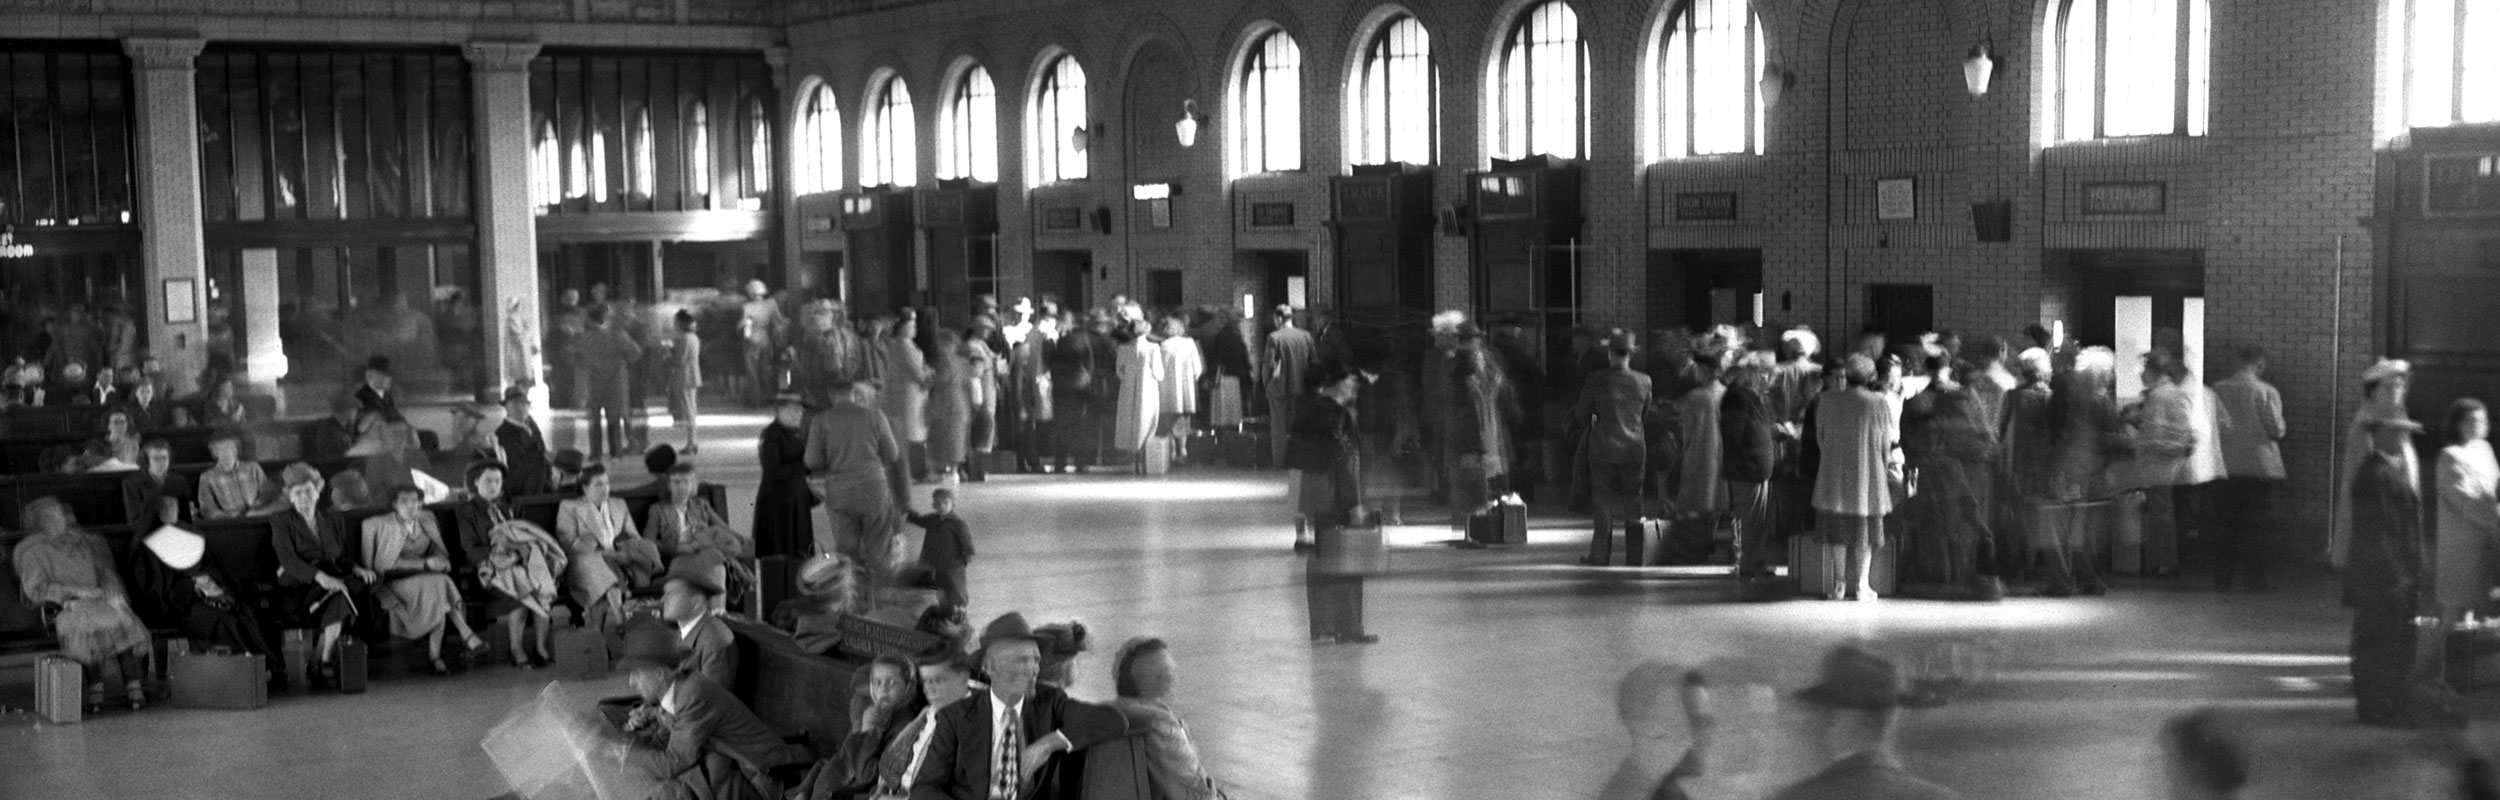 Union Depot bustled with travelers during the 1930s and '40s. More than 200 trains served Saint Paul in those days.